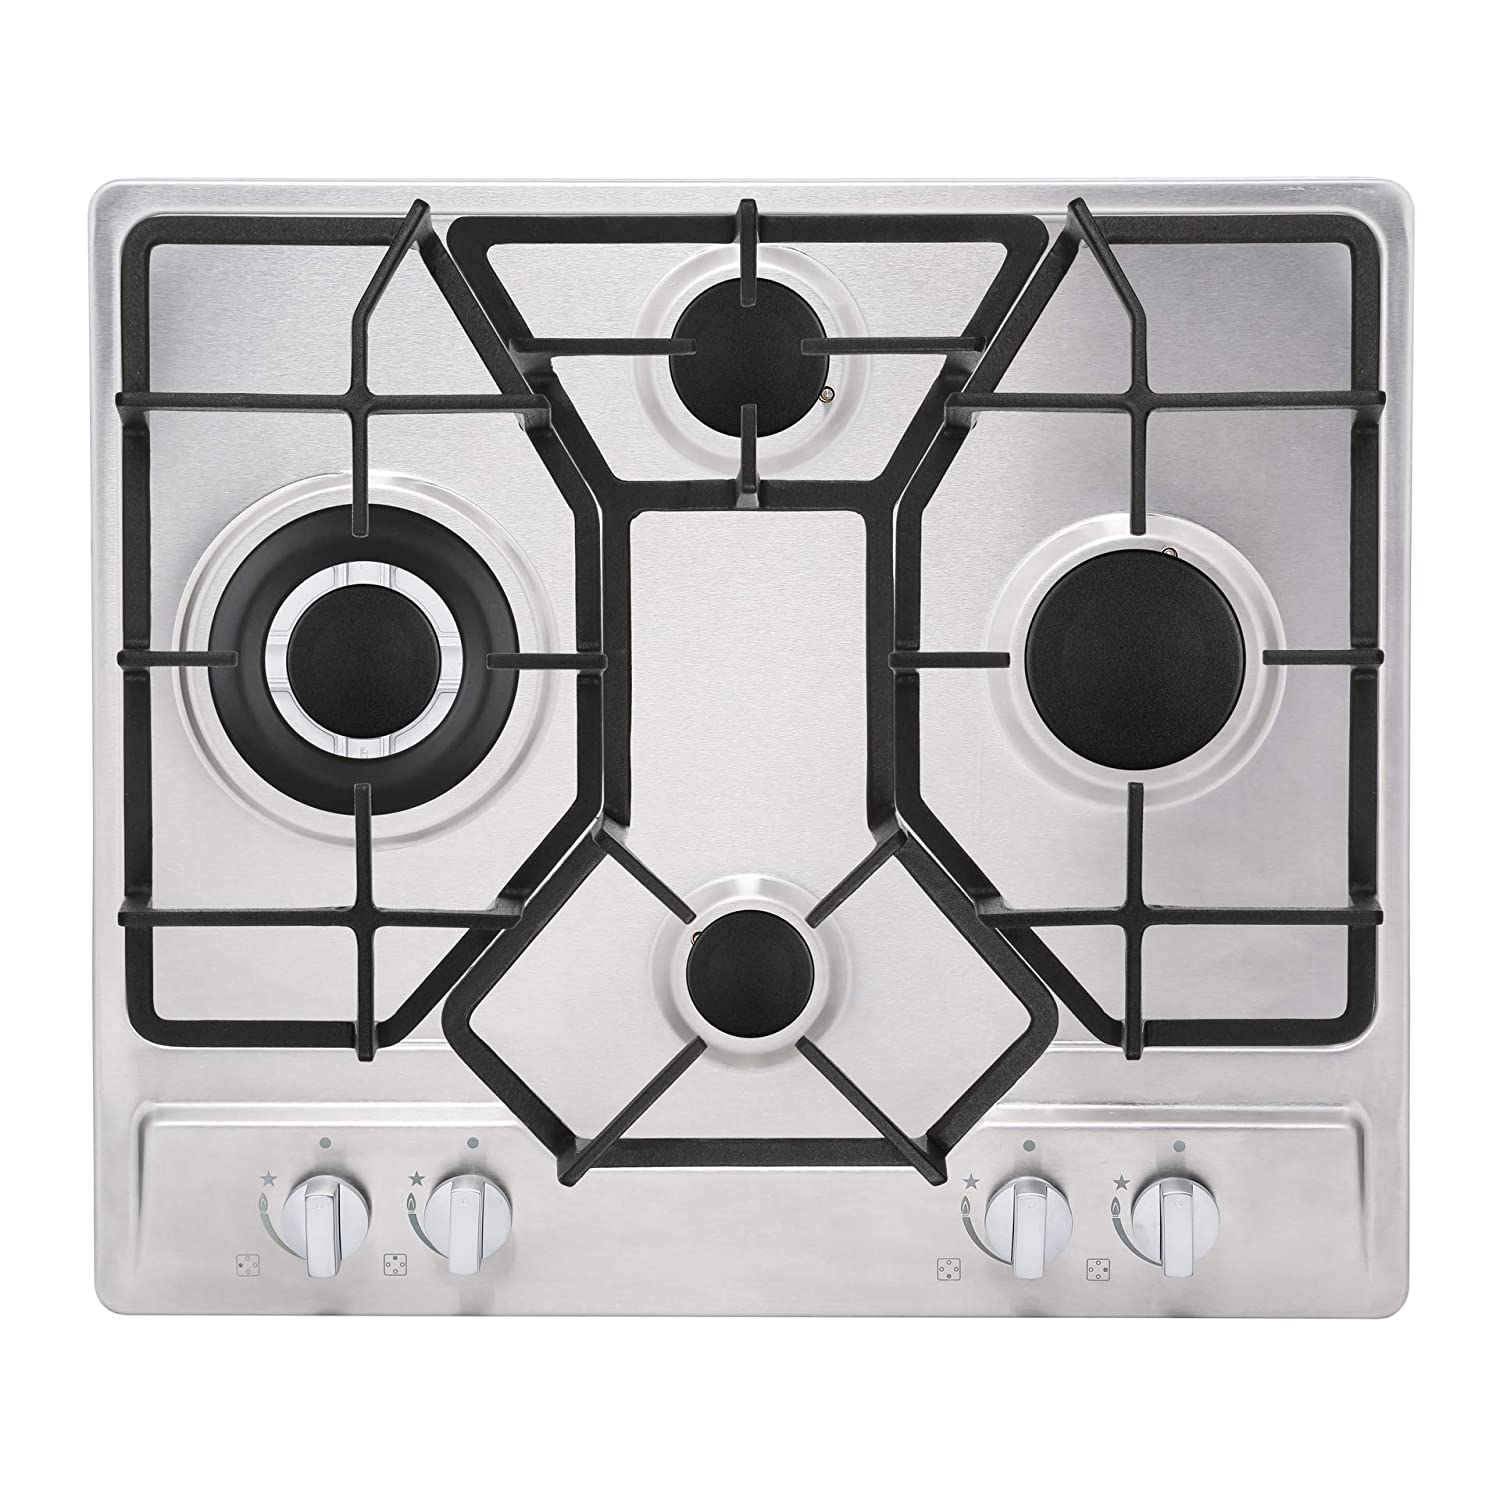 24 Inch Empava EMPV4L6A 4 Italy Imported Sabaf Burners NG//LPG Convertible Gas Stove Cooktop Tempered Glass Black